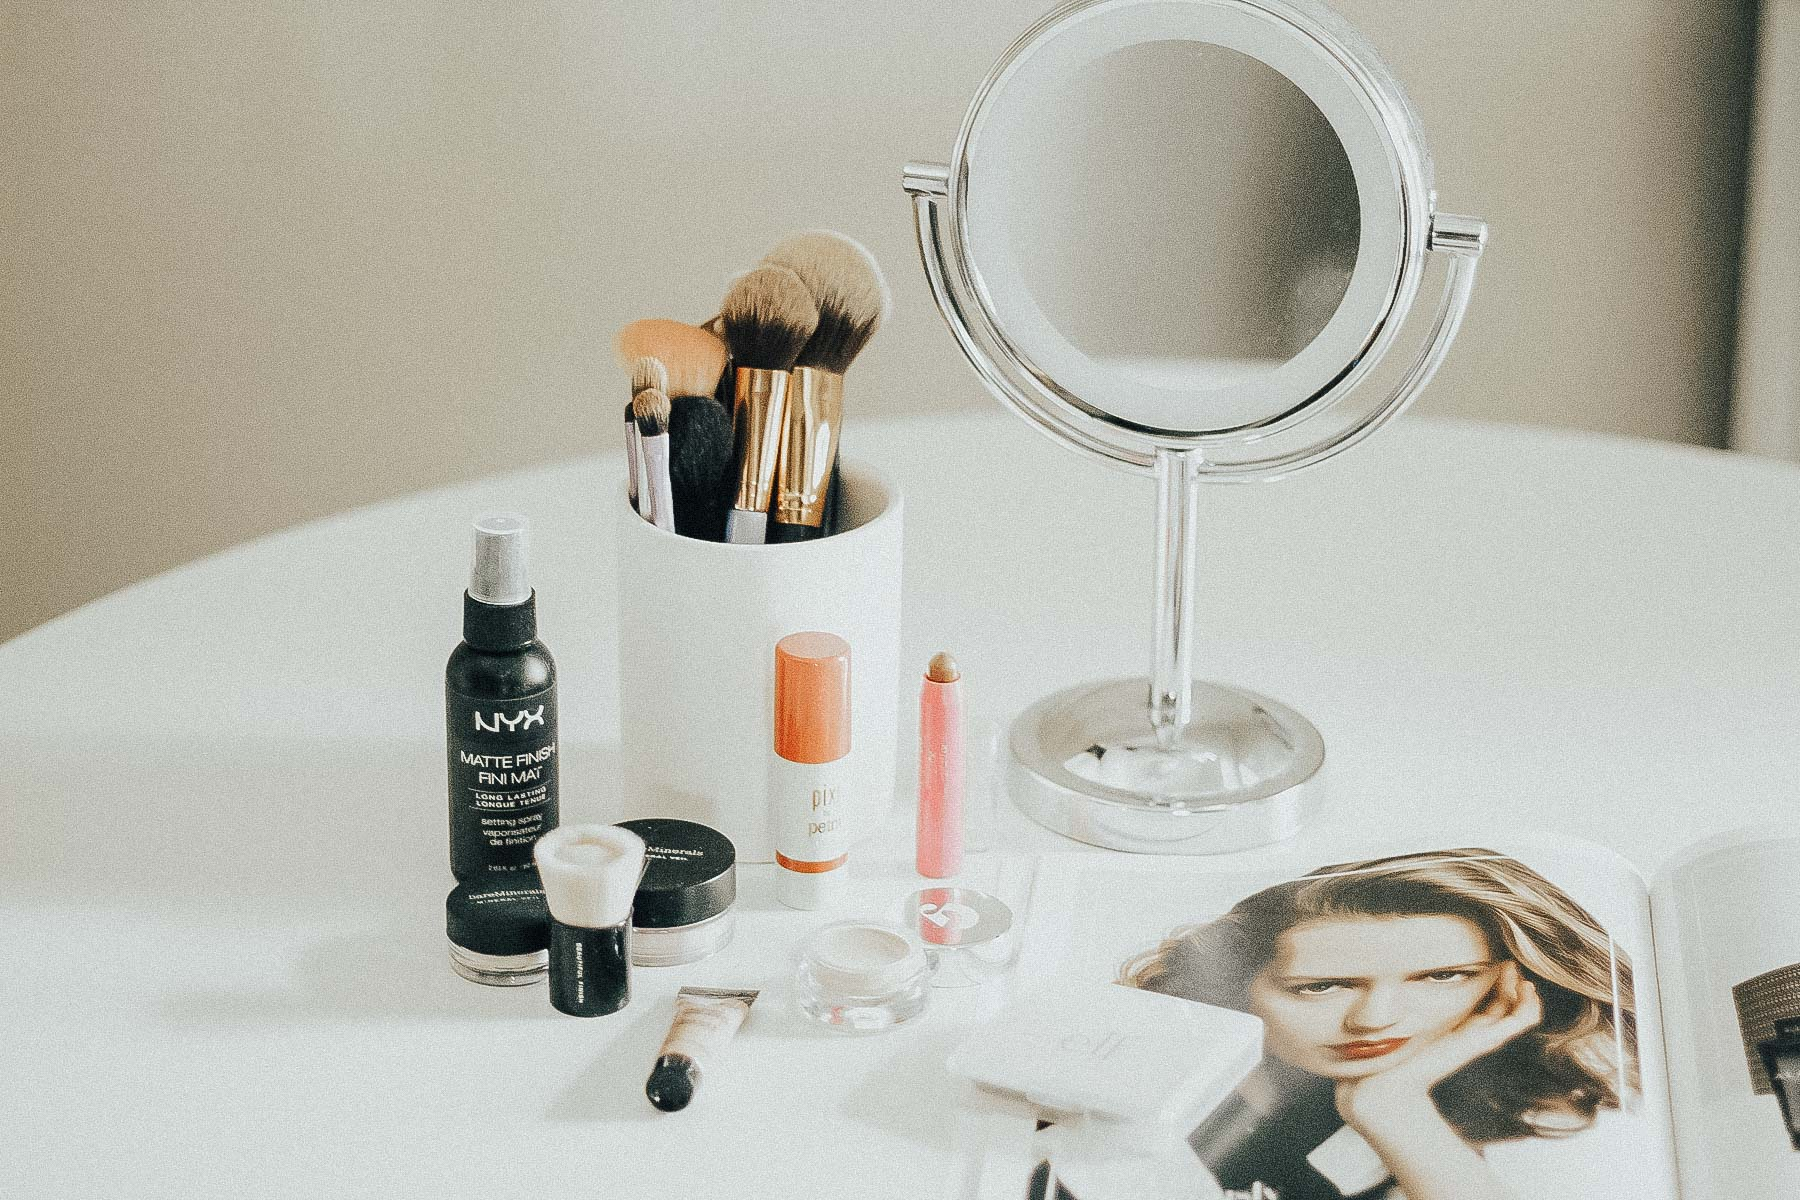 6 Ways To Sweat-Proof Your Summer Beauty Routine